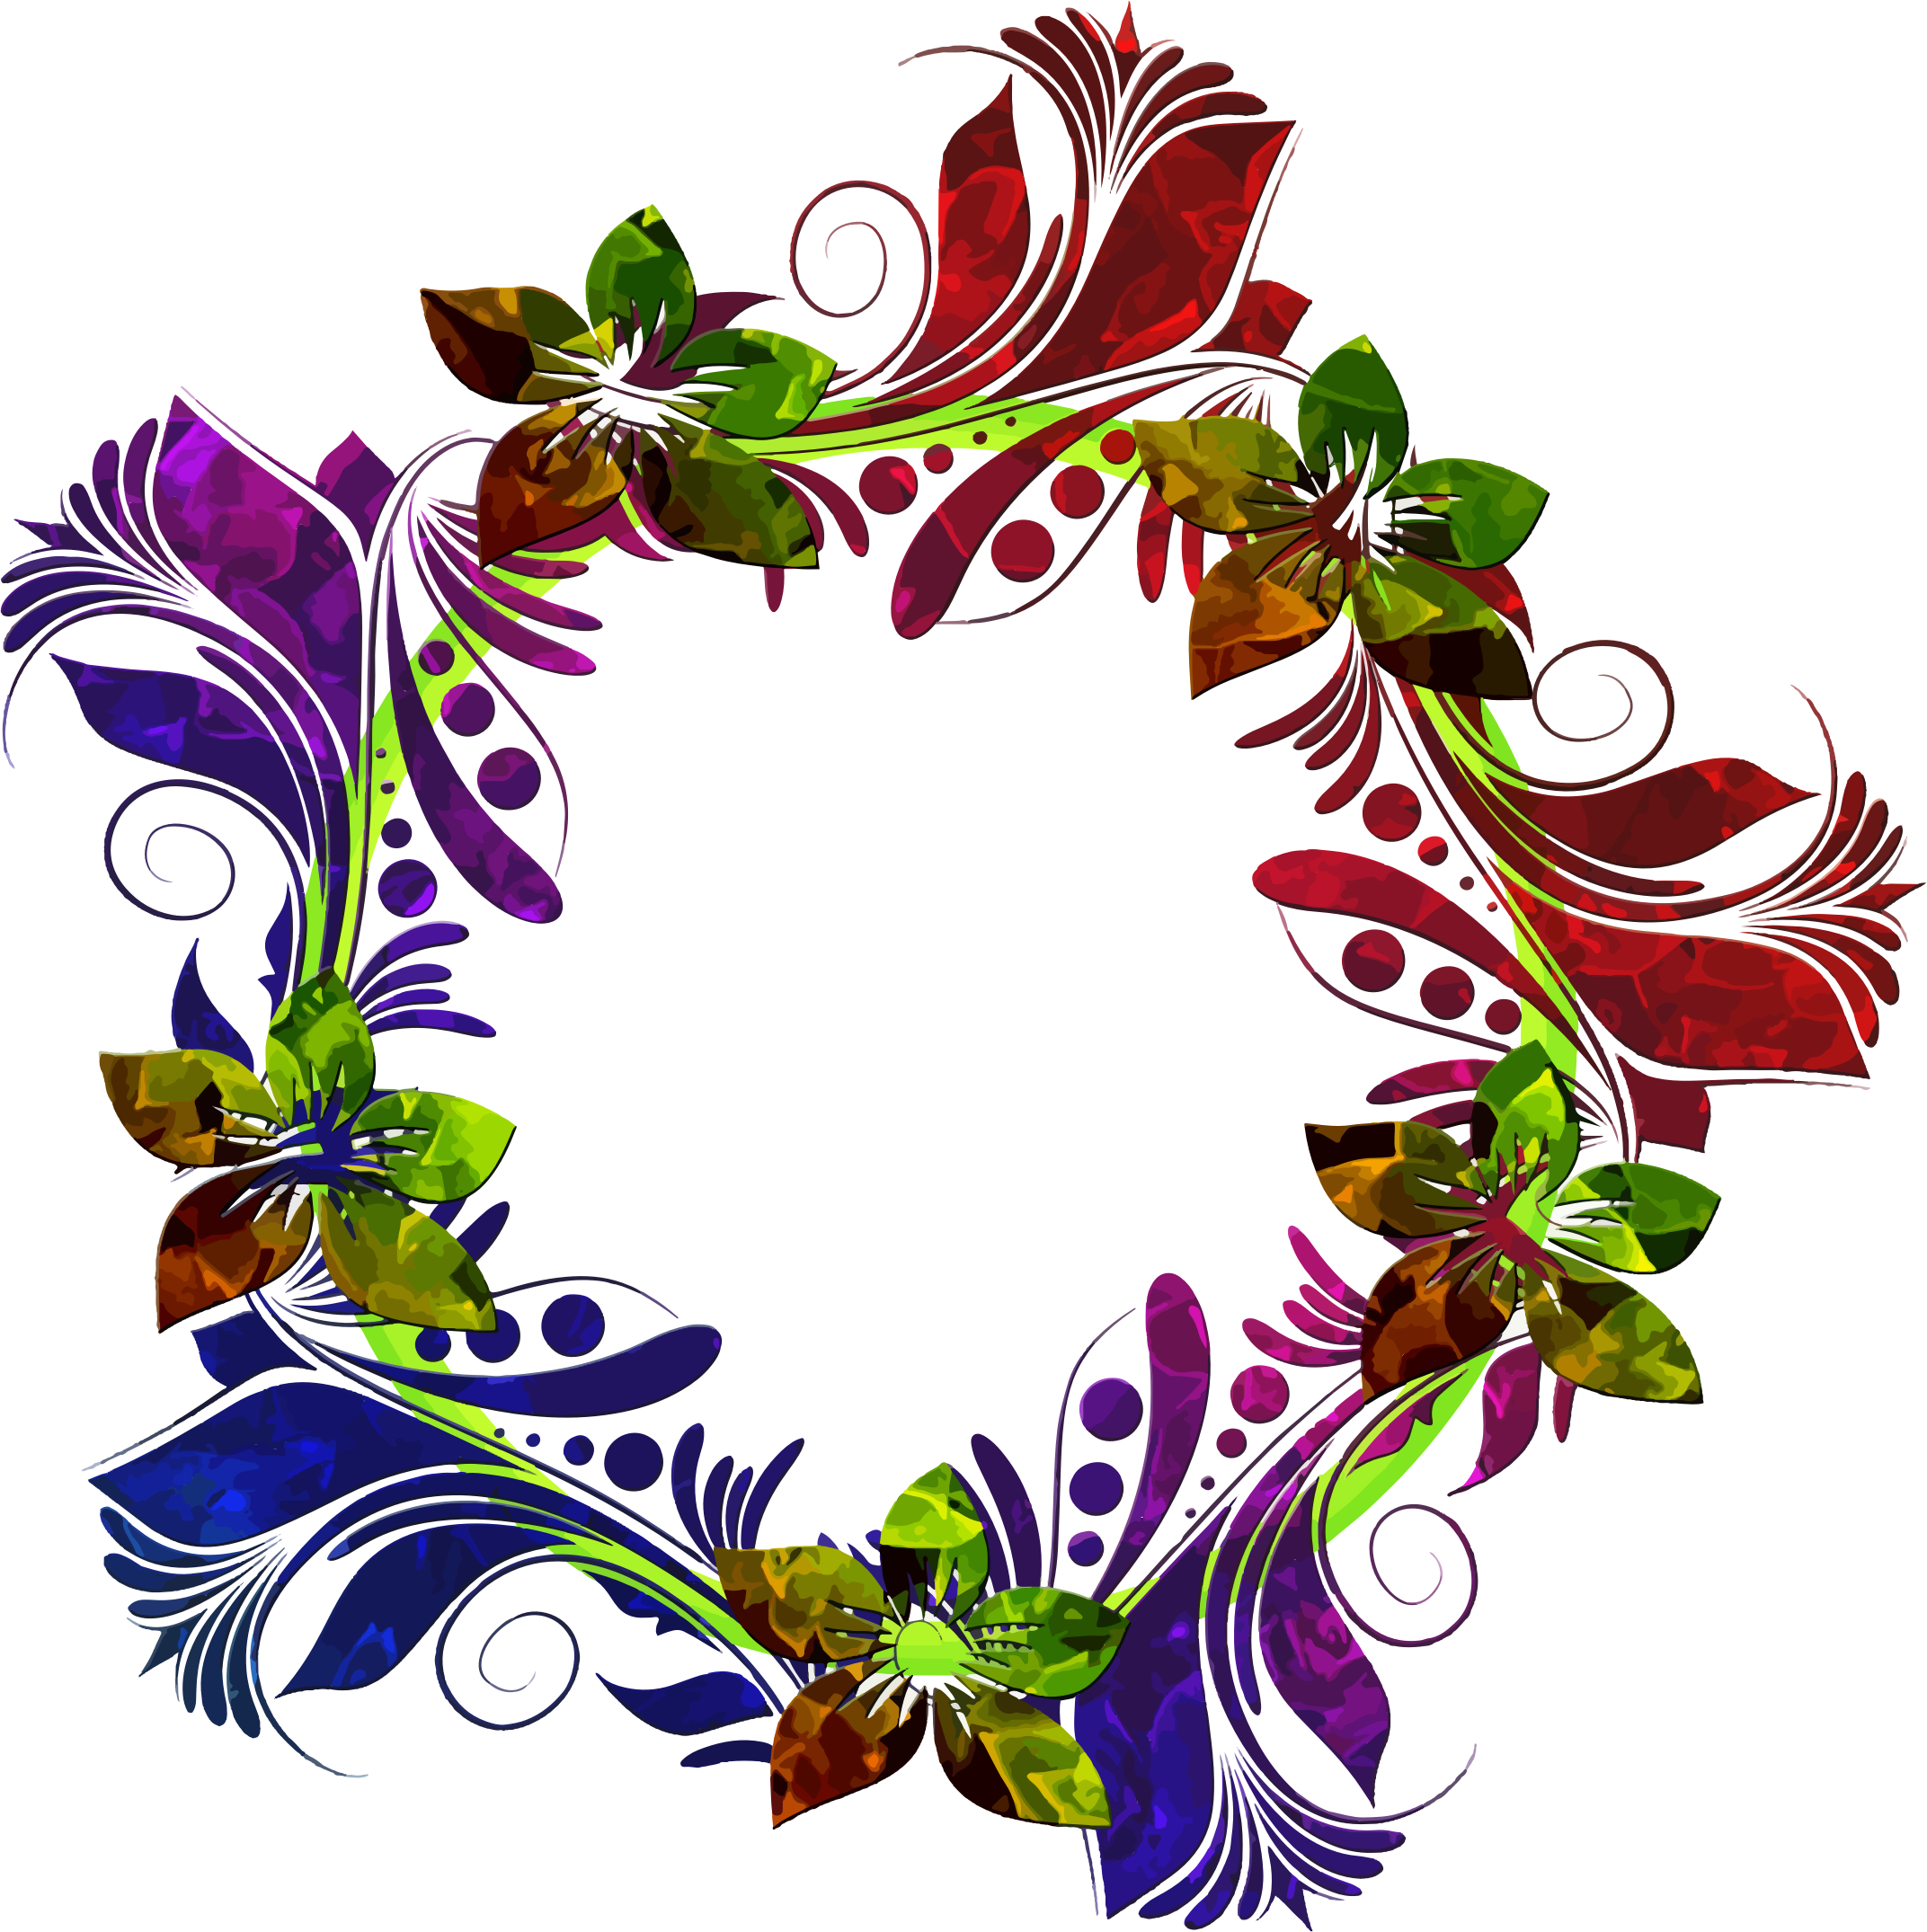 Colorful Floral Wreath by GDJ